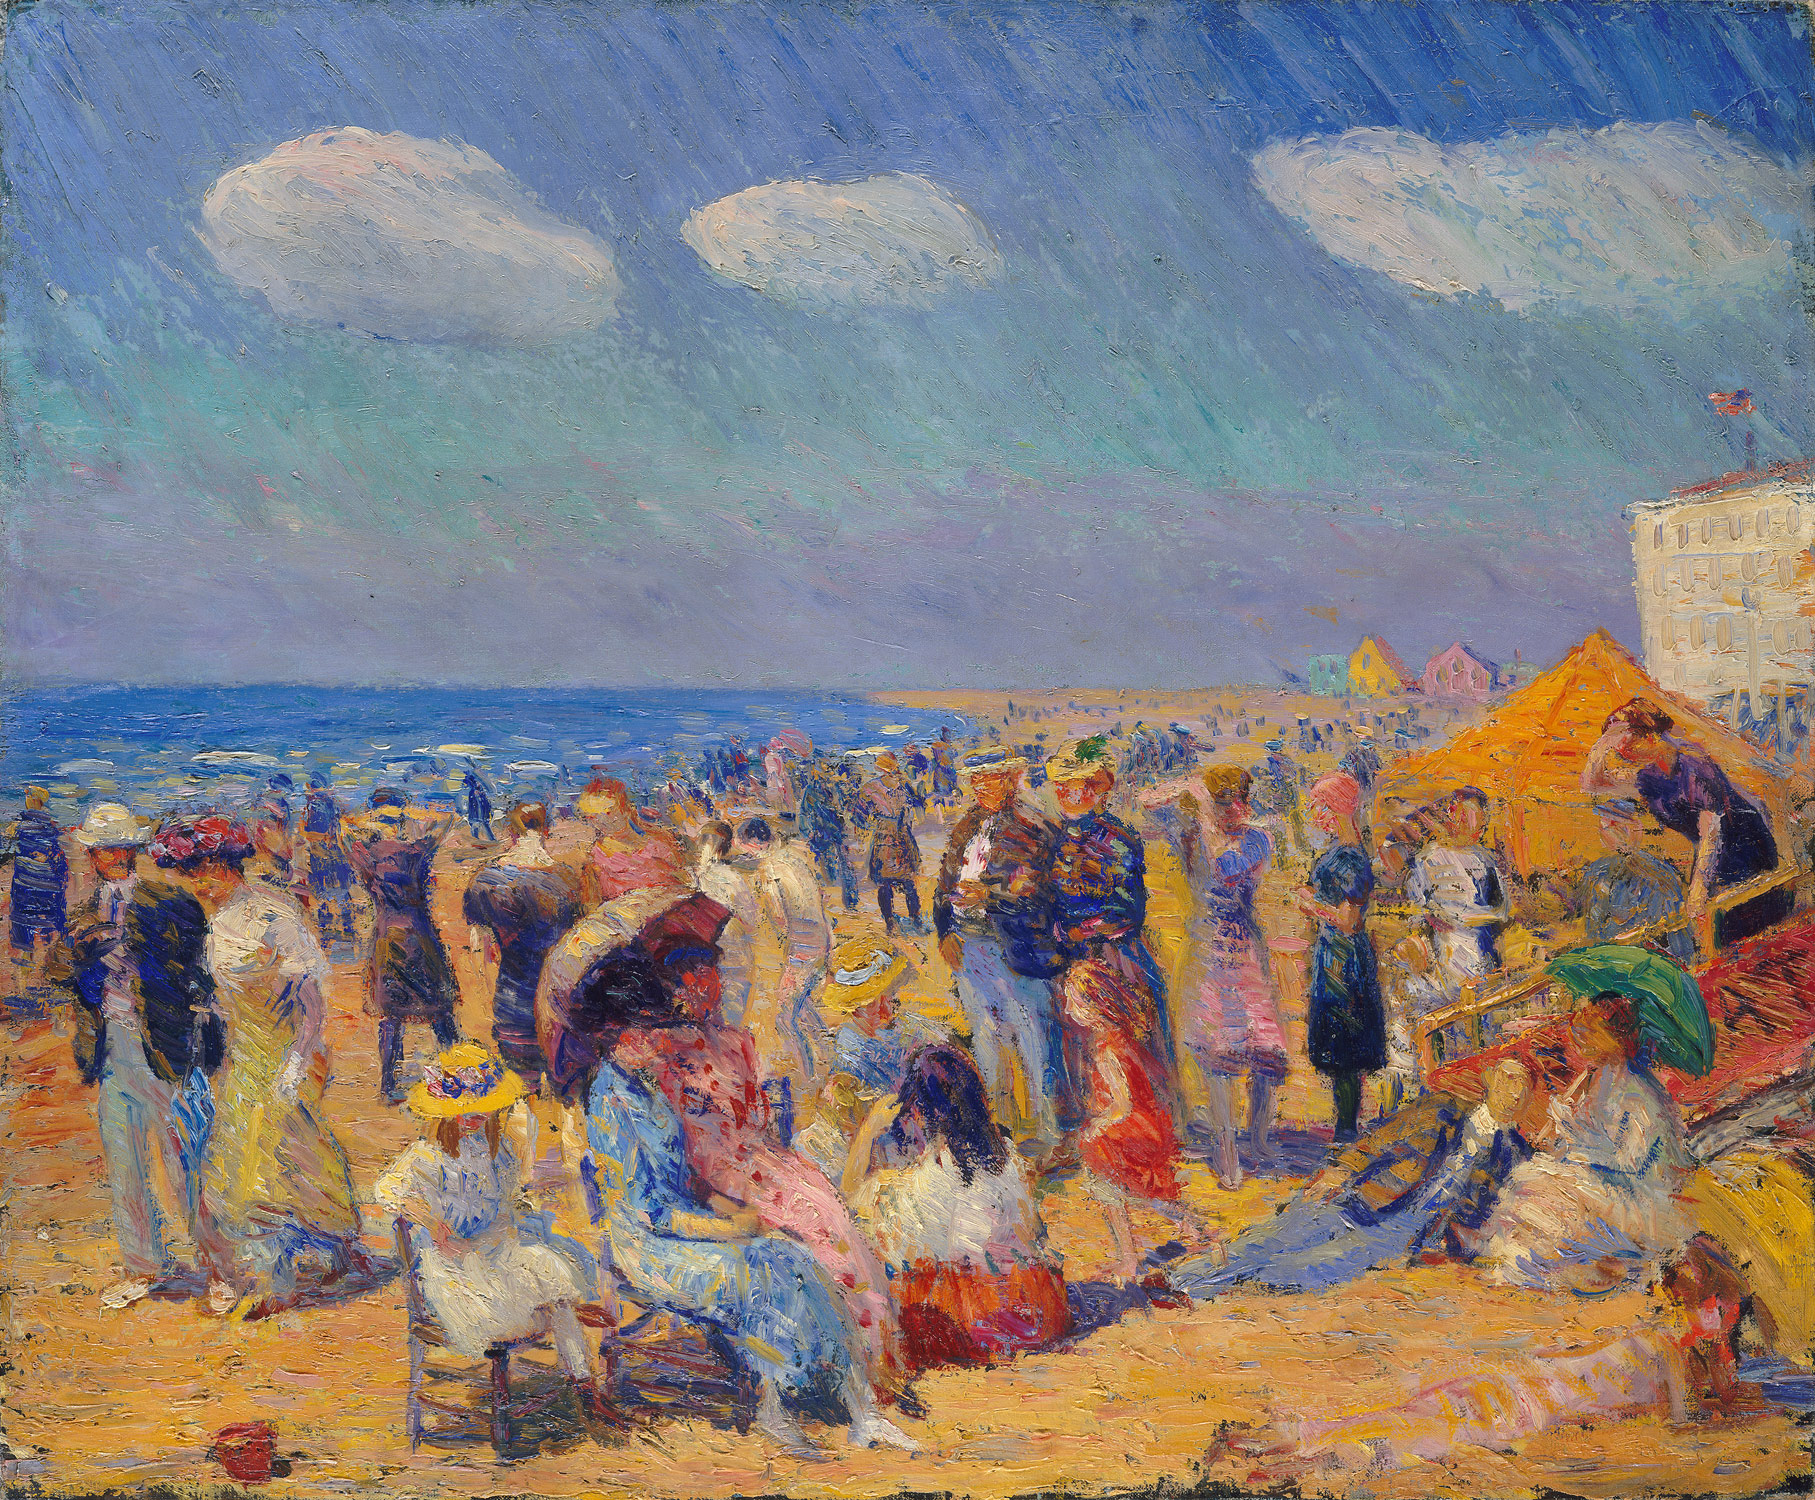 Crowd at the Seashore